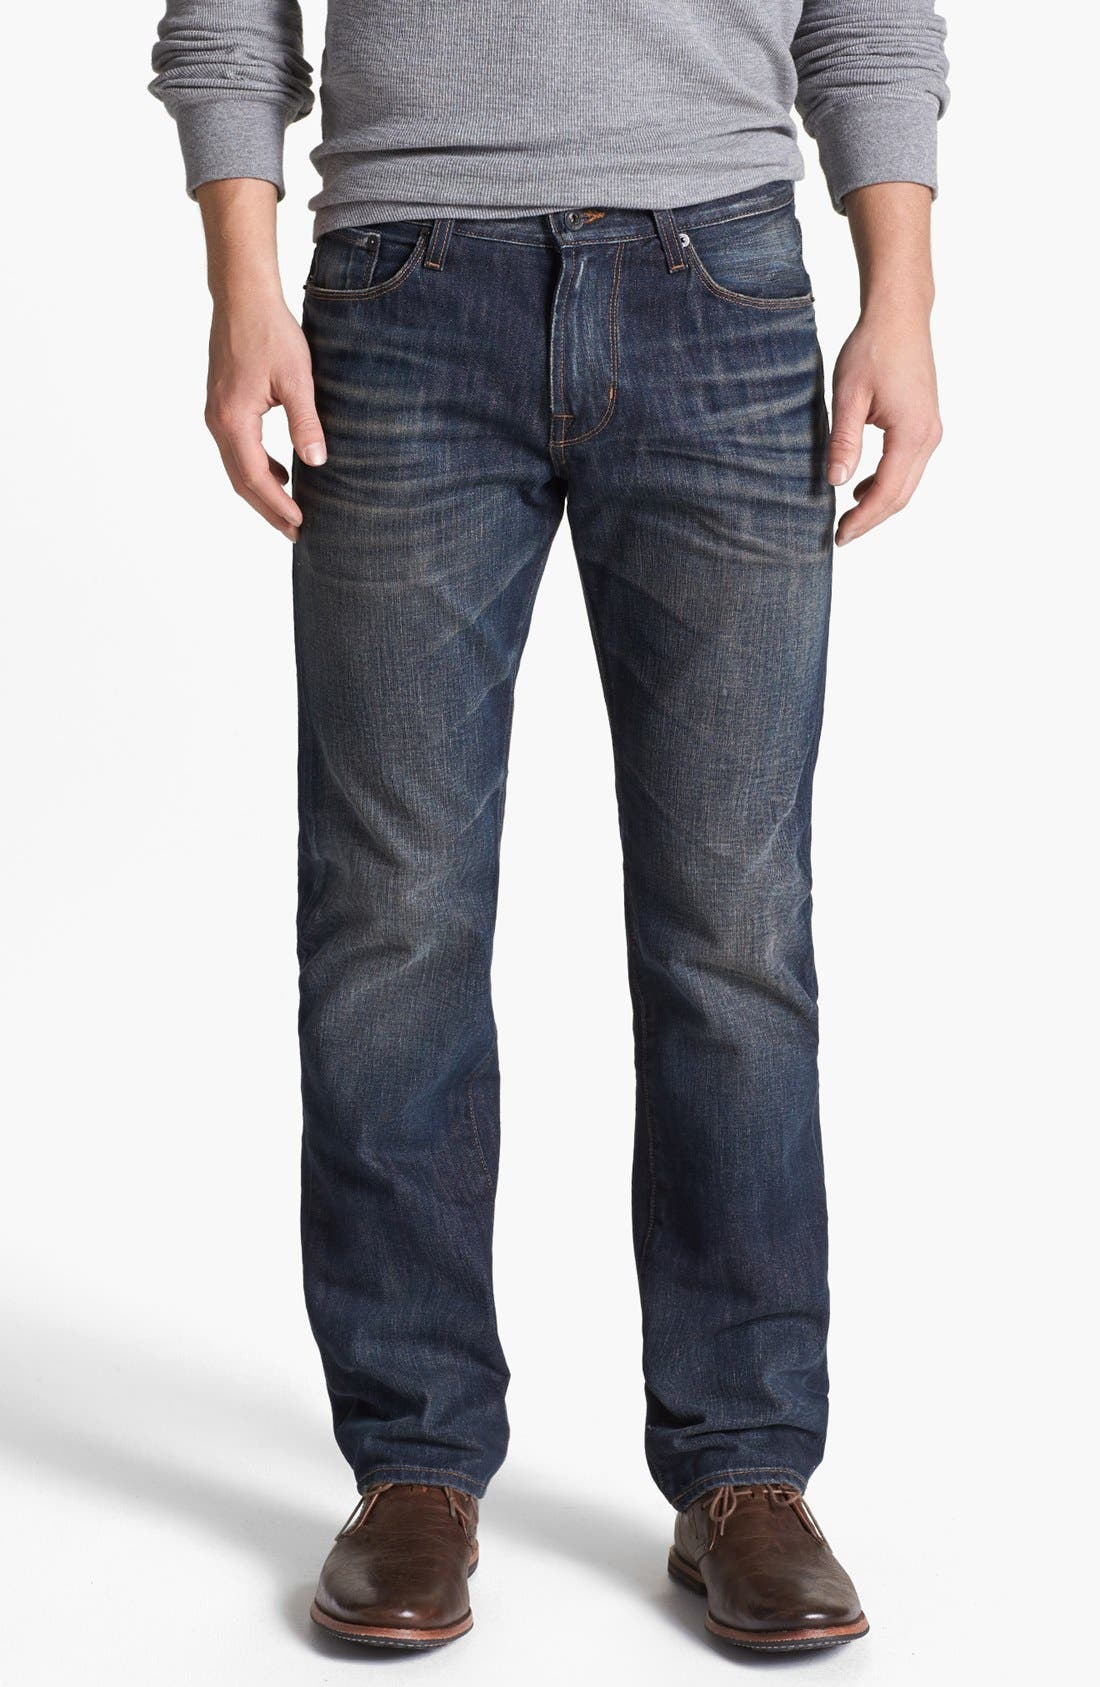 Main Image - Big Star 'Division' Straight Leg Jeans (6 Year Piston)